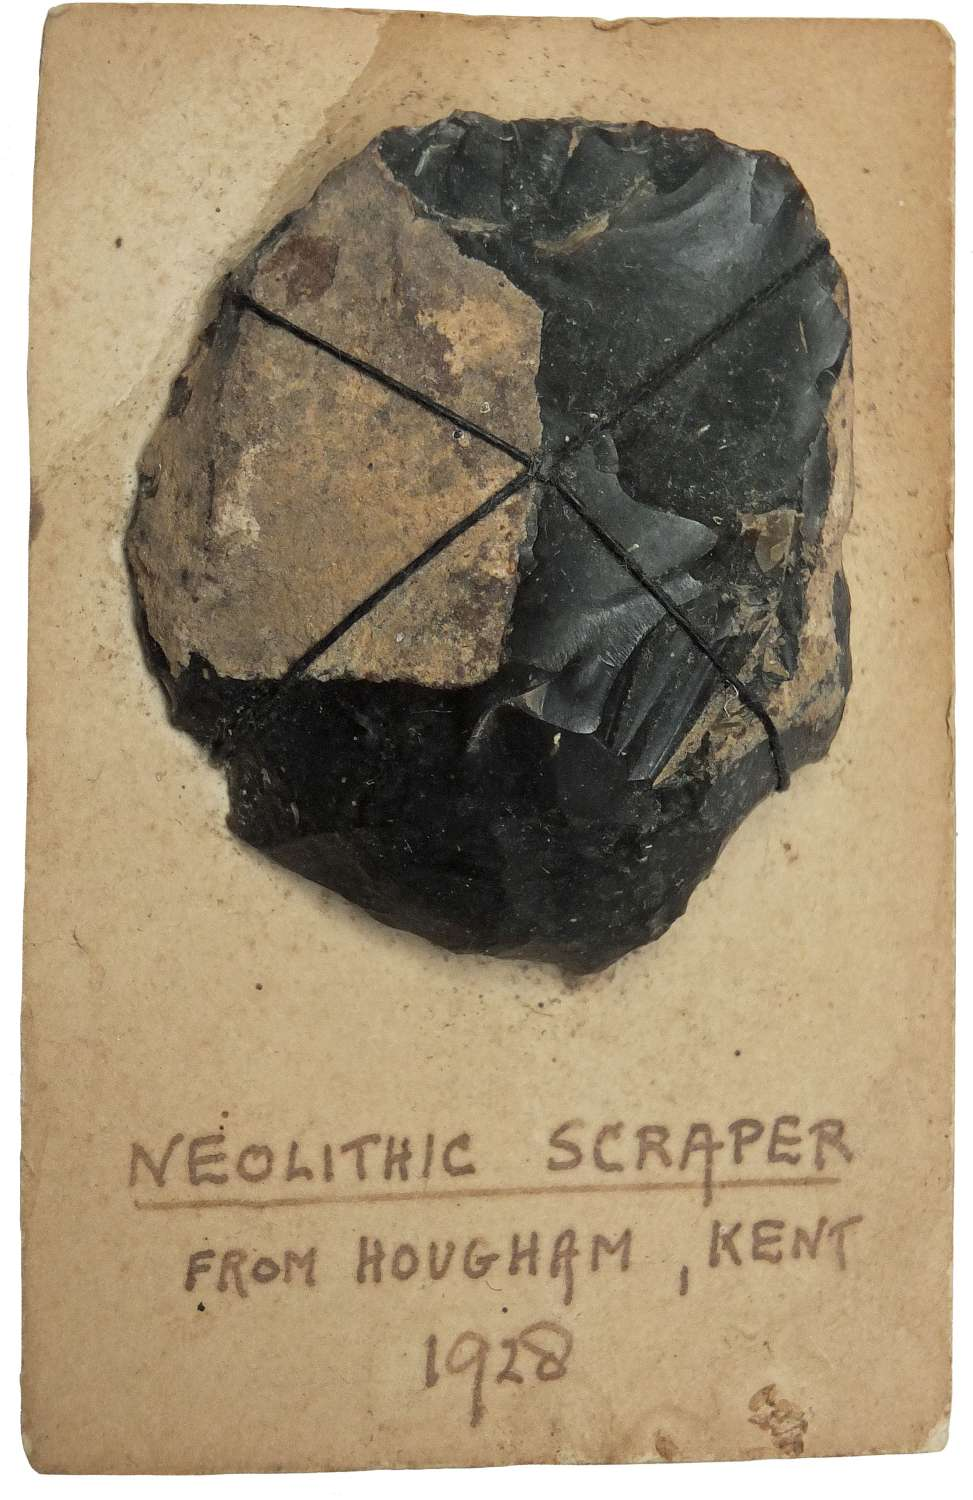 A Neolithic flint scraper found at Hougham, near Dover, Kent, in 1928